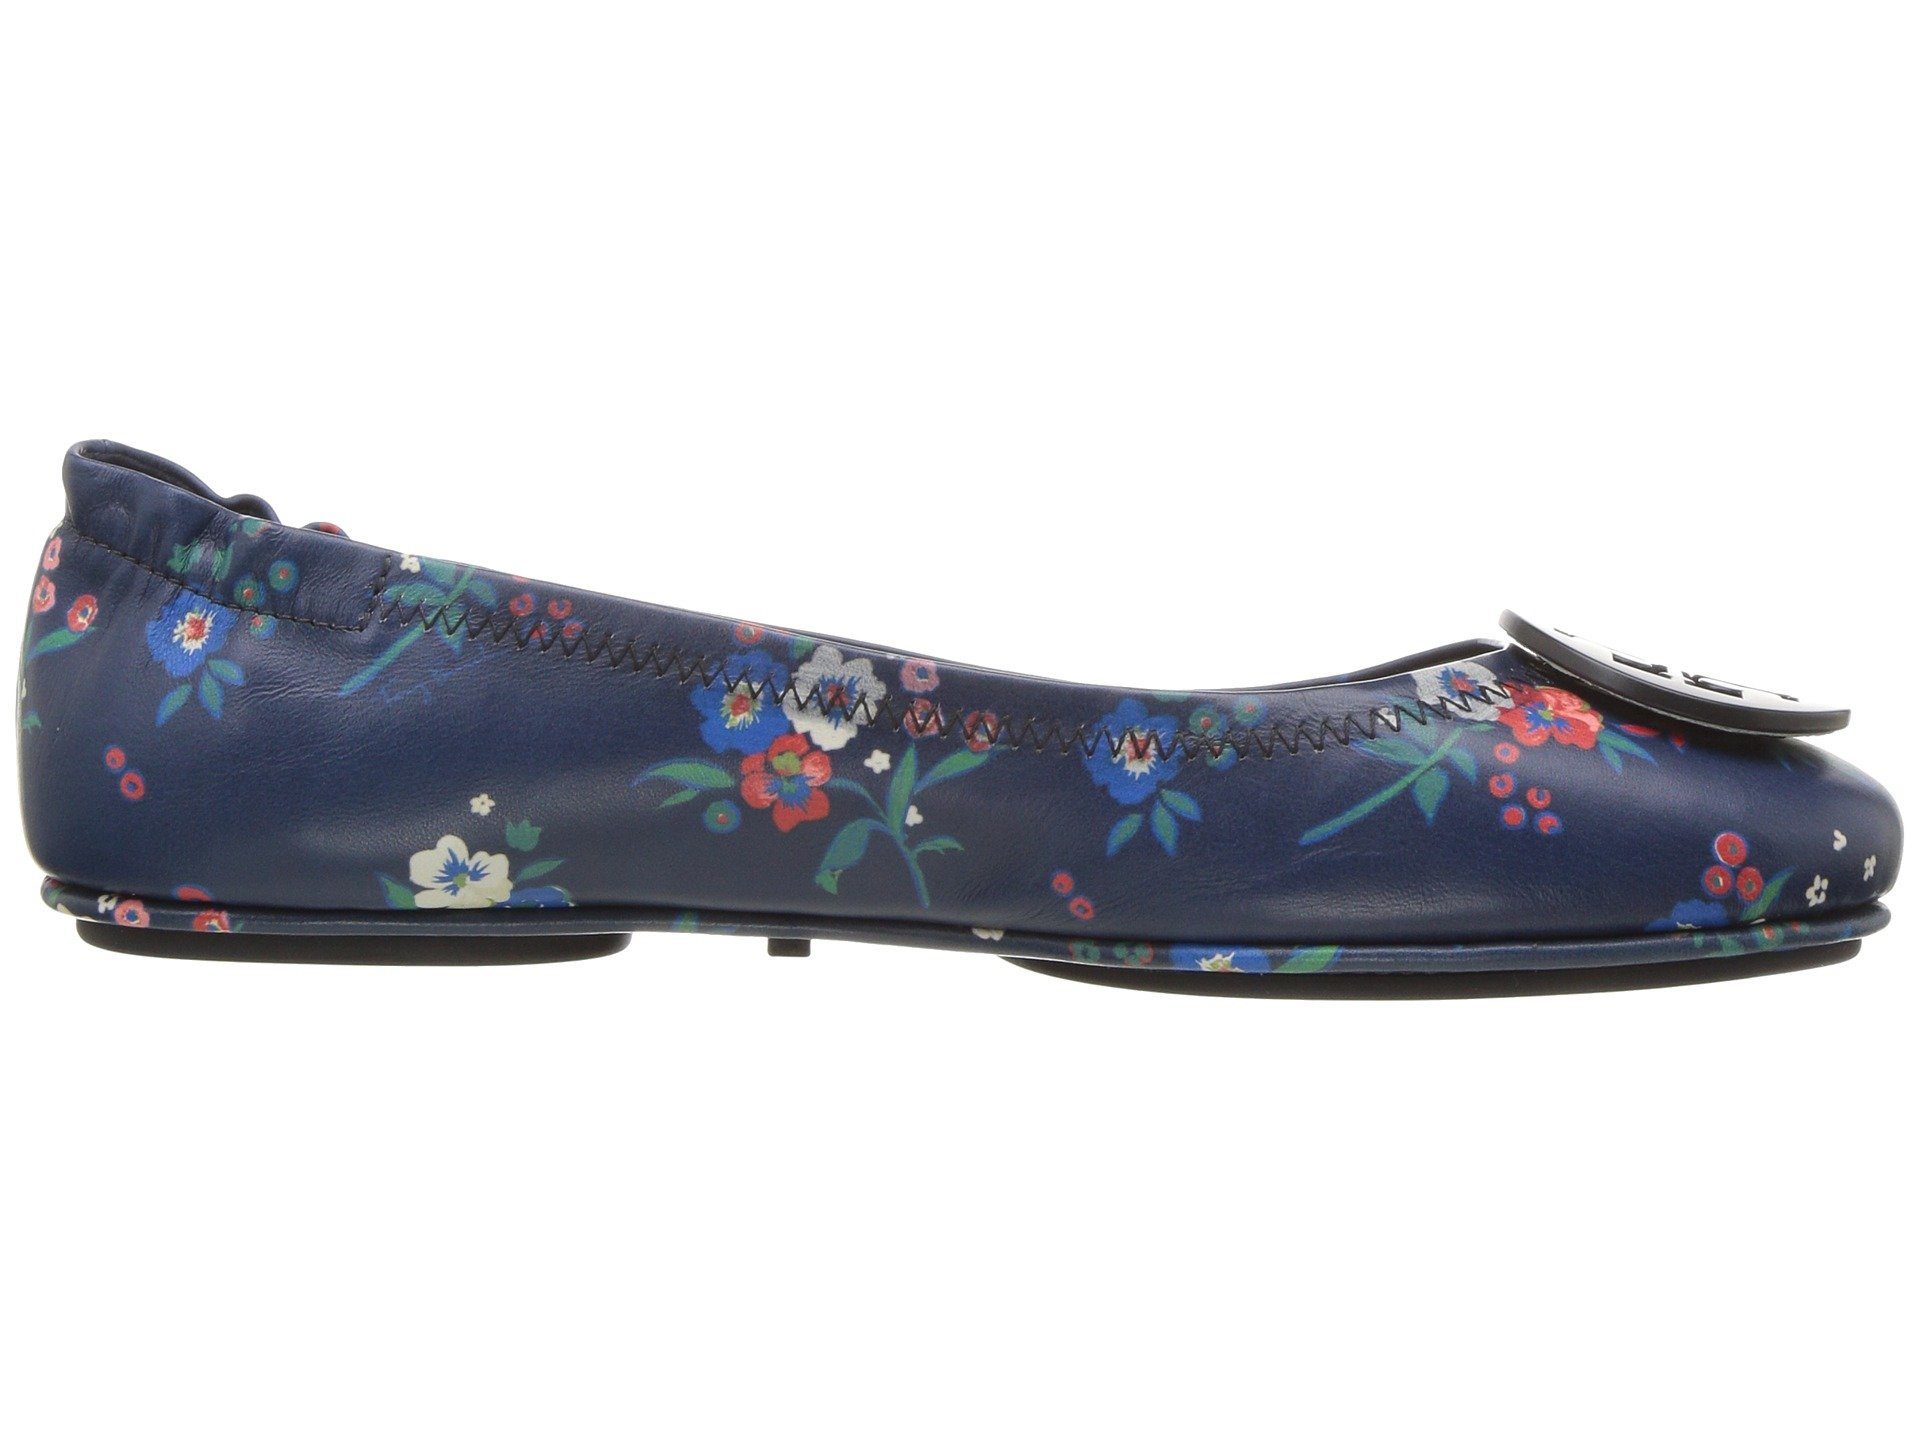 Tory Burch Minnie Travel Floral Print Lether Ballet Flat Size 8 by Tory Burch (Image #8)